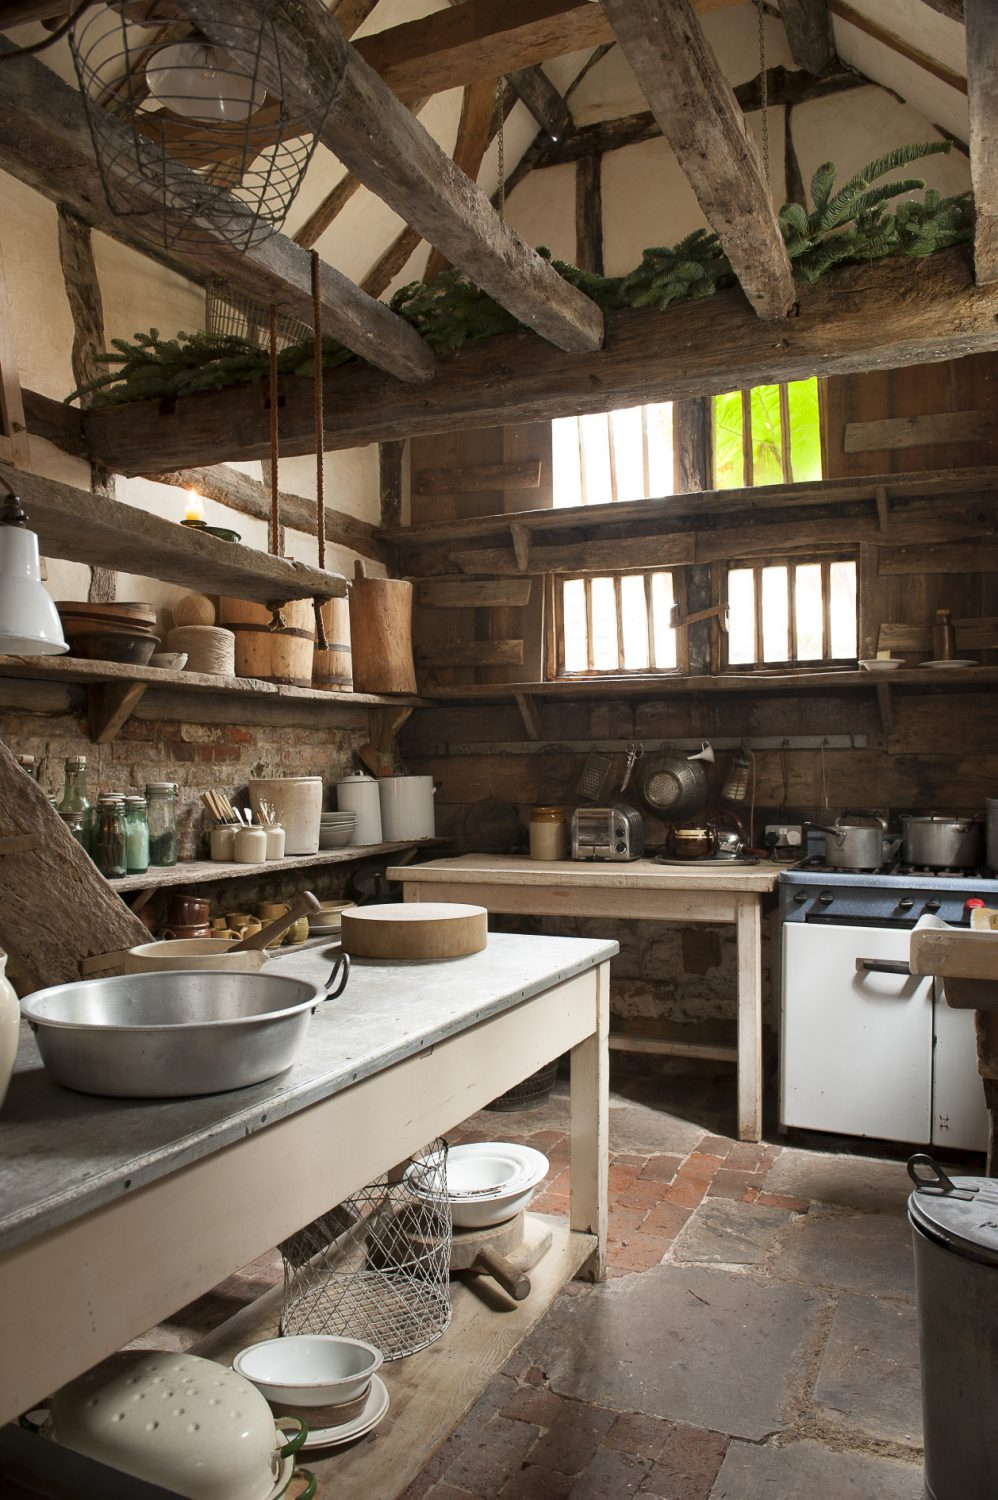 Whereas mod cons like plumbing and lighting are cunningly concealed out of sight in the rest of the house, hints of modern-day living and appliances can be spotted in the kitchen